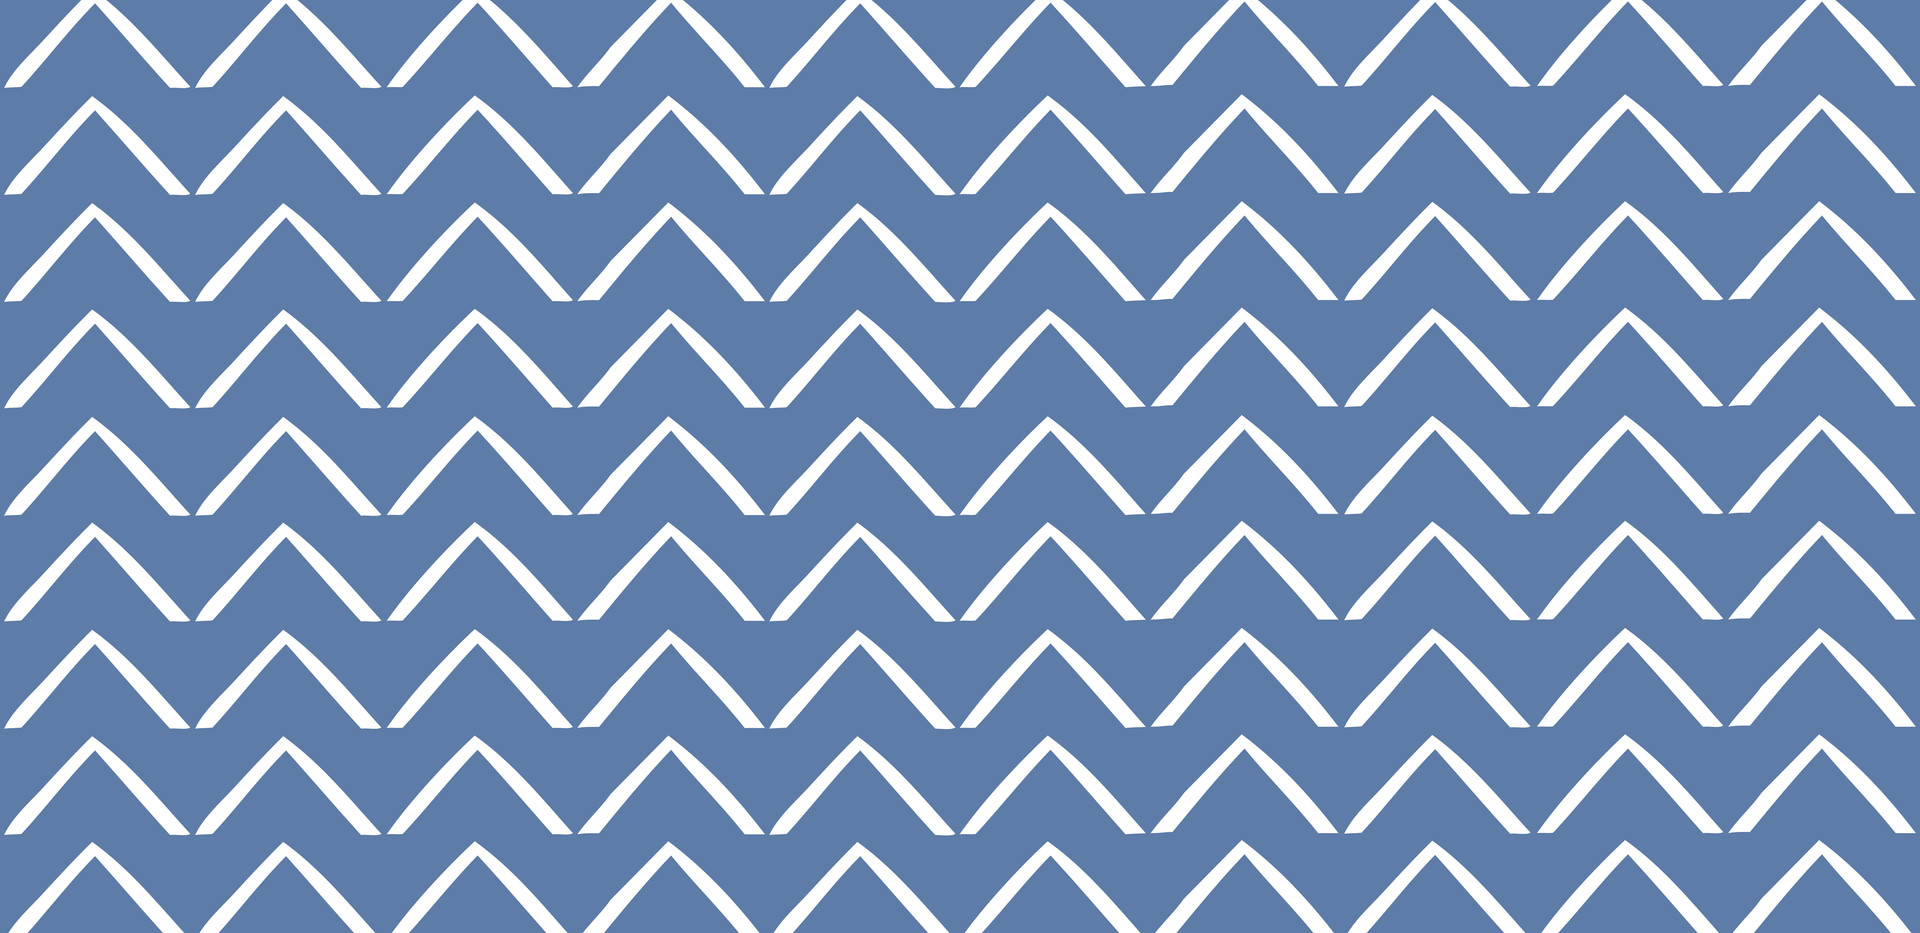 ZigZag Arrows . Azure